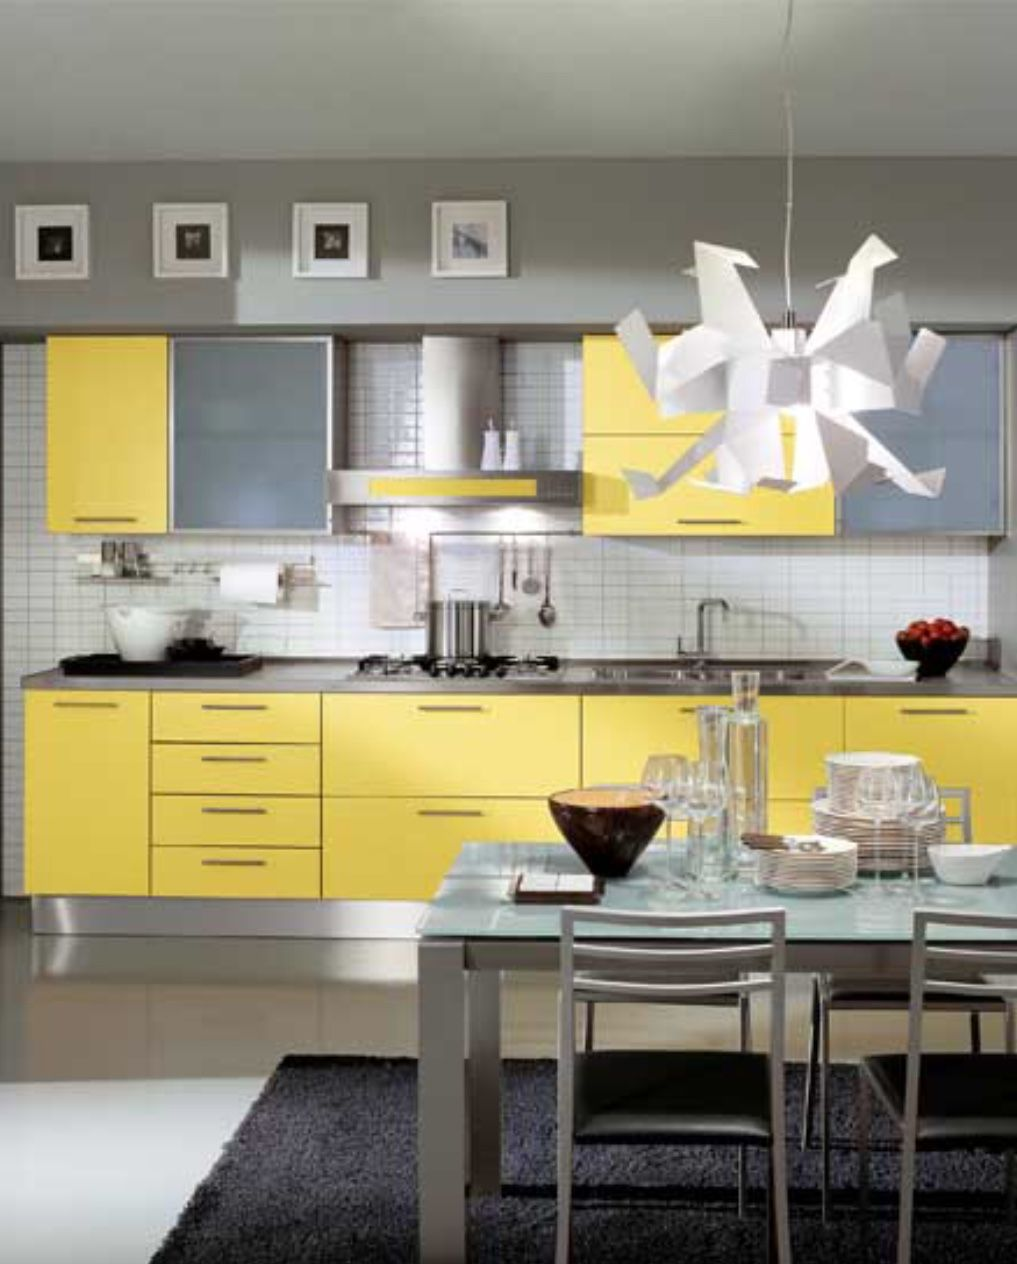 Pin By Carmen Laura On Product Design With Images Yellow Kitchen Decor Yellow Kitchen Cabinets Grey Kitchen